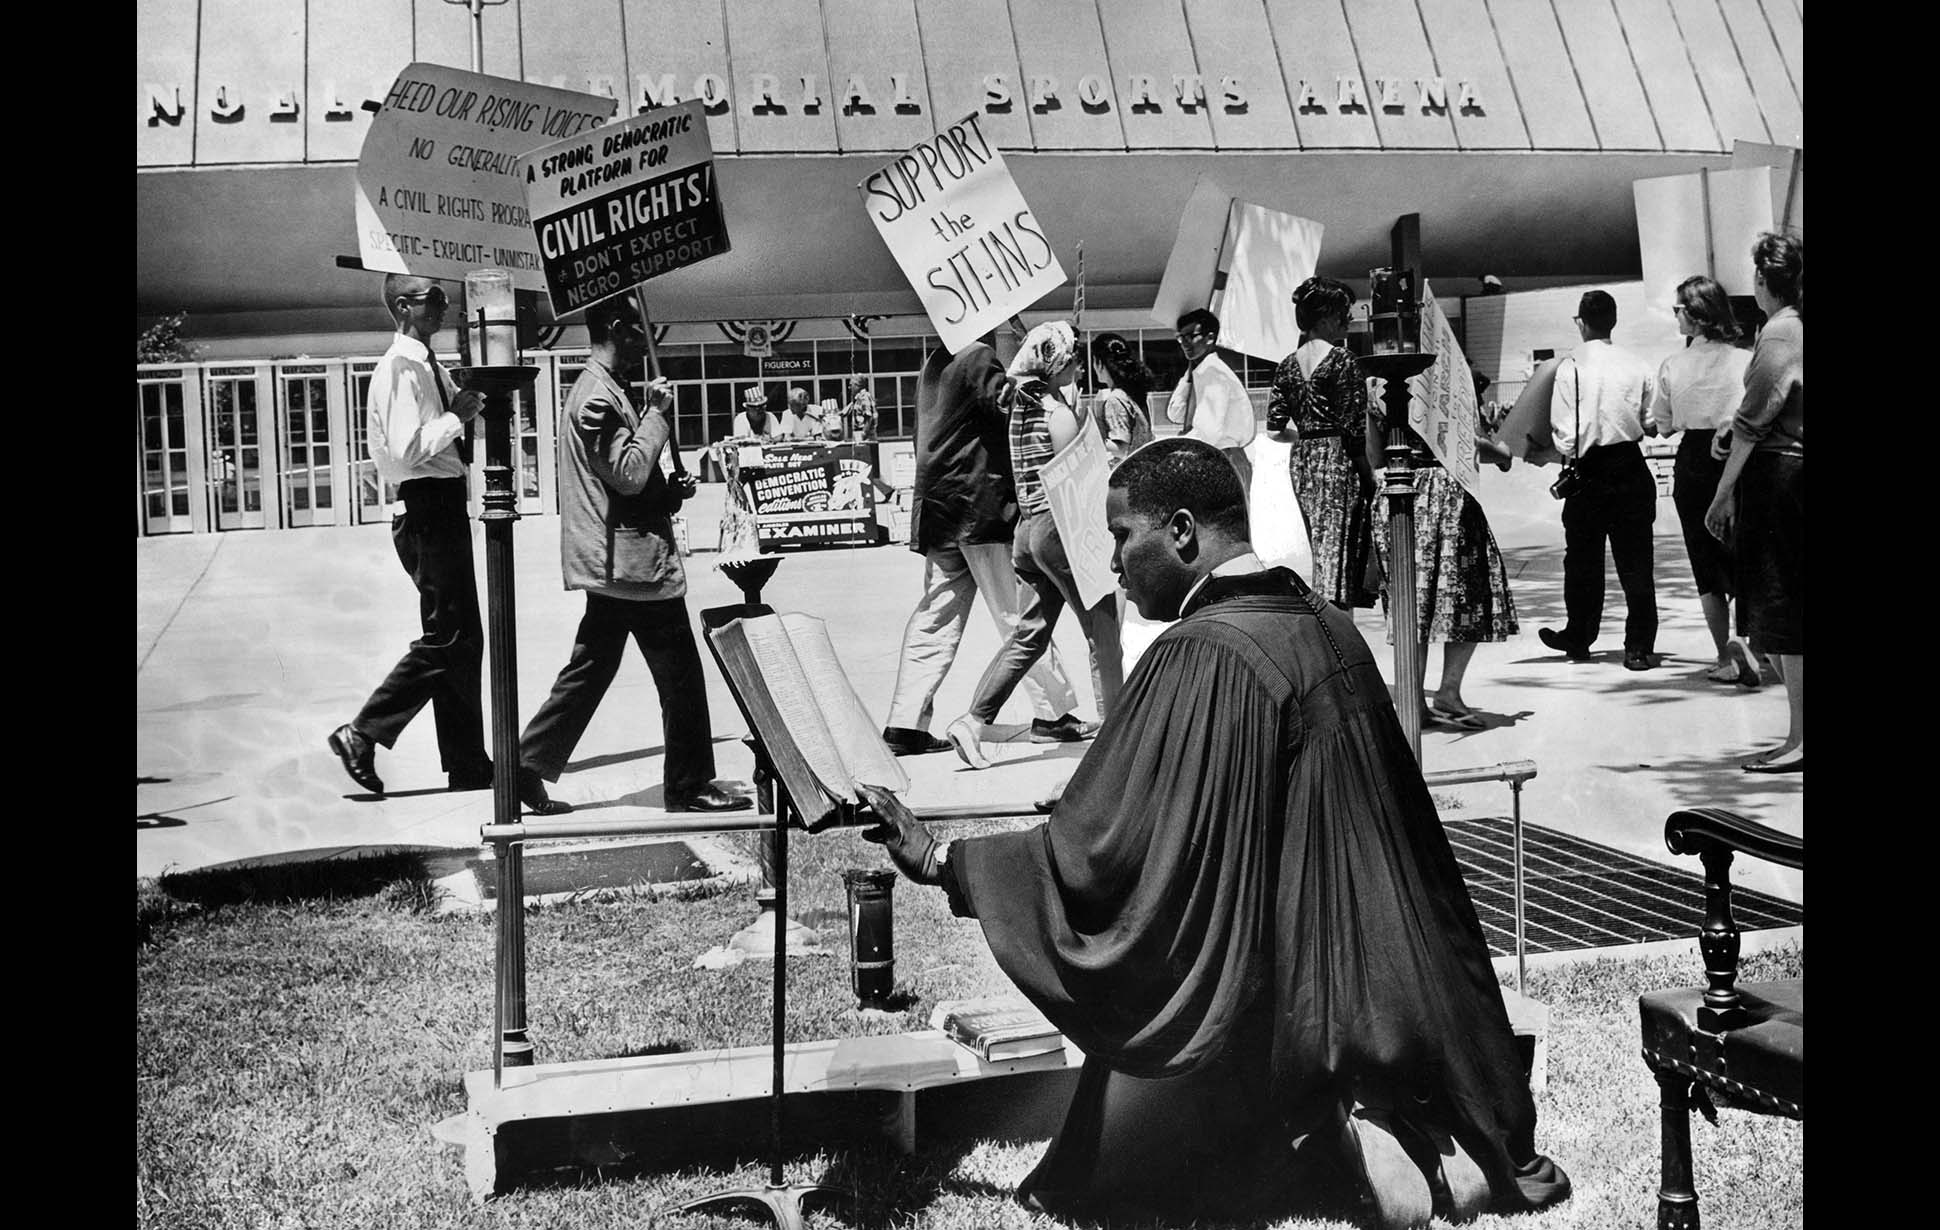 July 11, 1960: Rev. Maurice A. Dawkins engages in a 24-hour period of prayer and fasting outside of the Los Angeles Memorial Sports Arena during the Democratic National Convention. Dawkins and protestors were advocating a liberal civil rights platform. This photo was published in the July 12, 1960 LA Times.